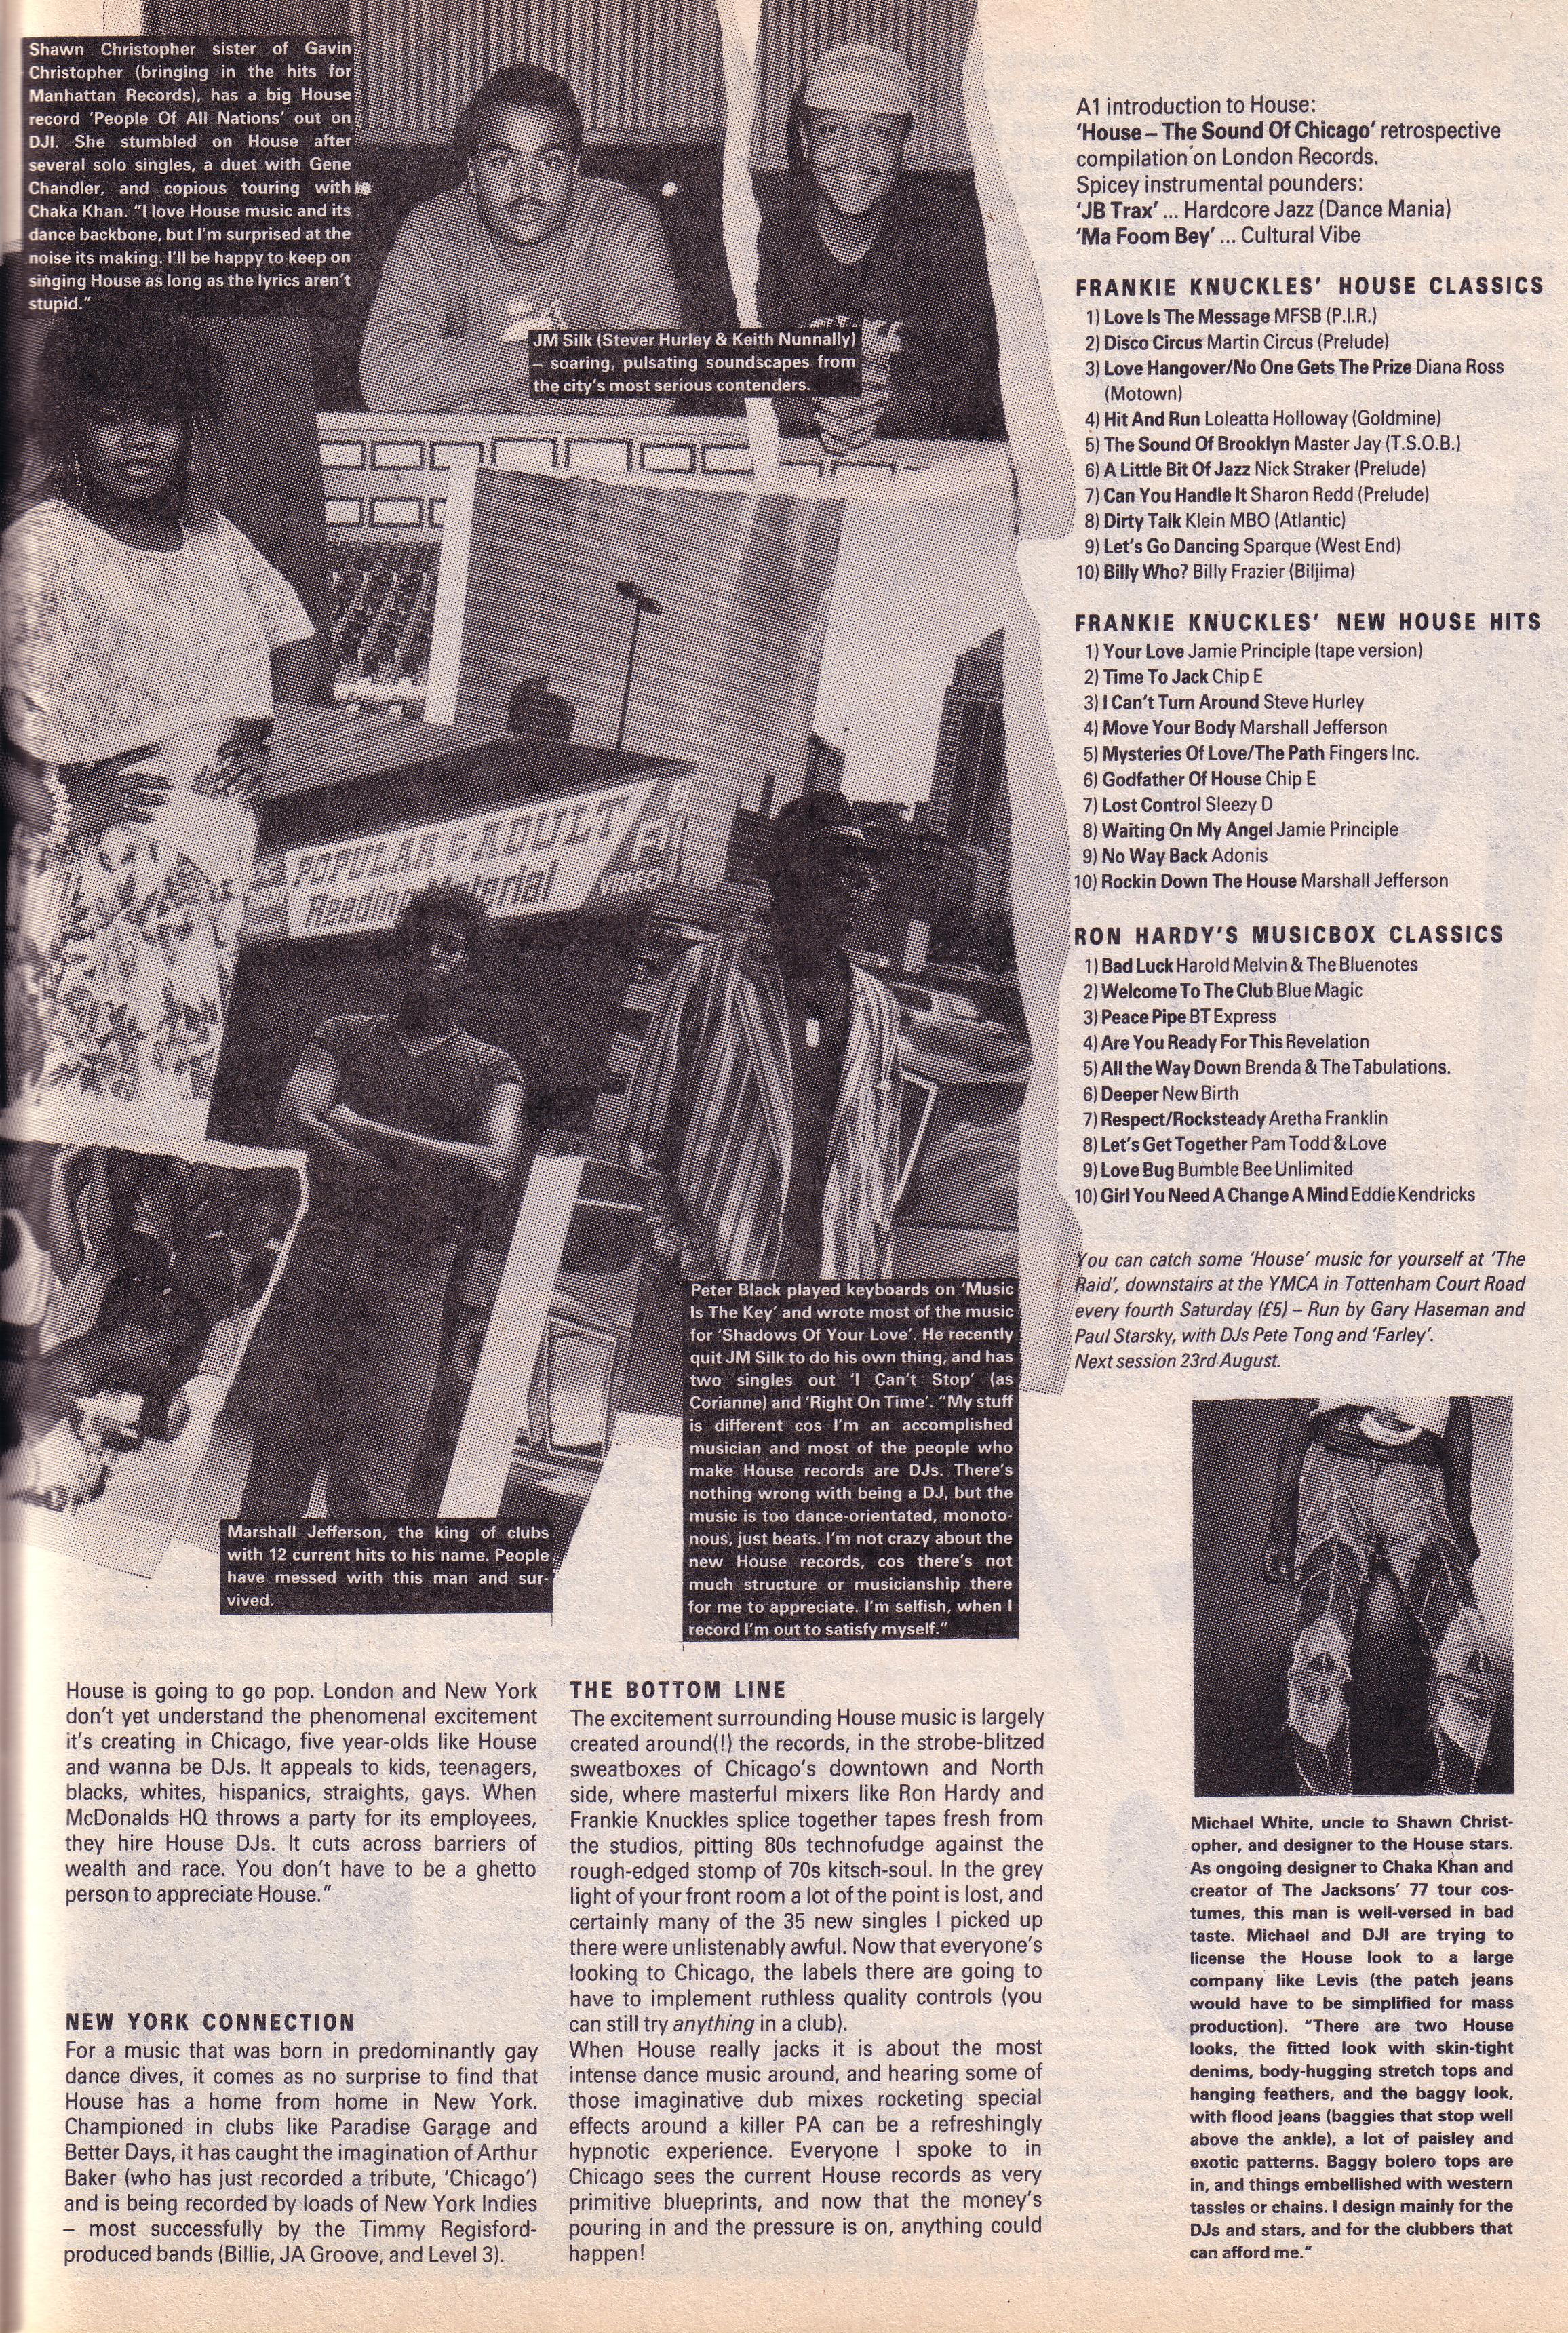 id-mag-issue-40-sep-1986-house-sound-of-chicago-4